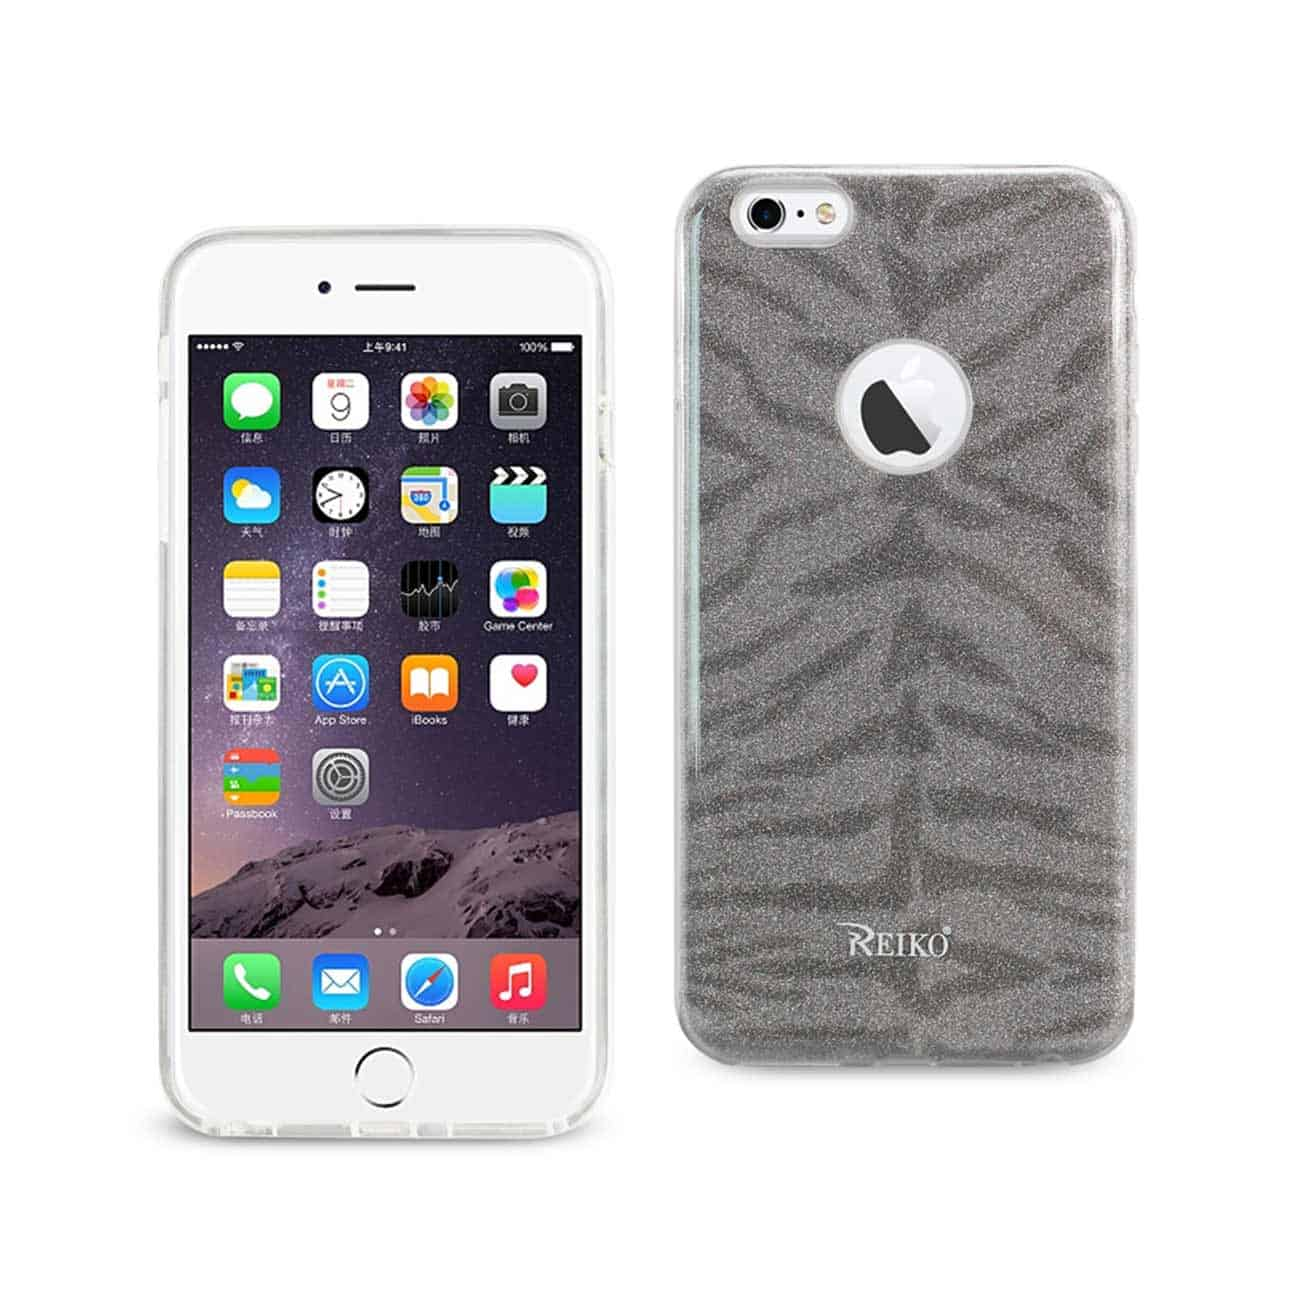 IPHONE 6 PLUS/ 6S PLUS SHINE GLITTER SHIMMER TIGER STRIPE HYBRID CASE IN GRAY